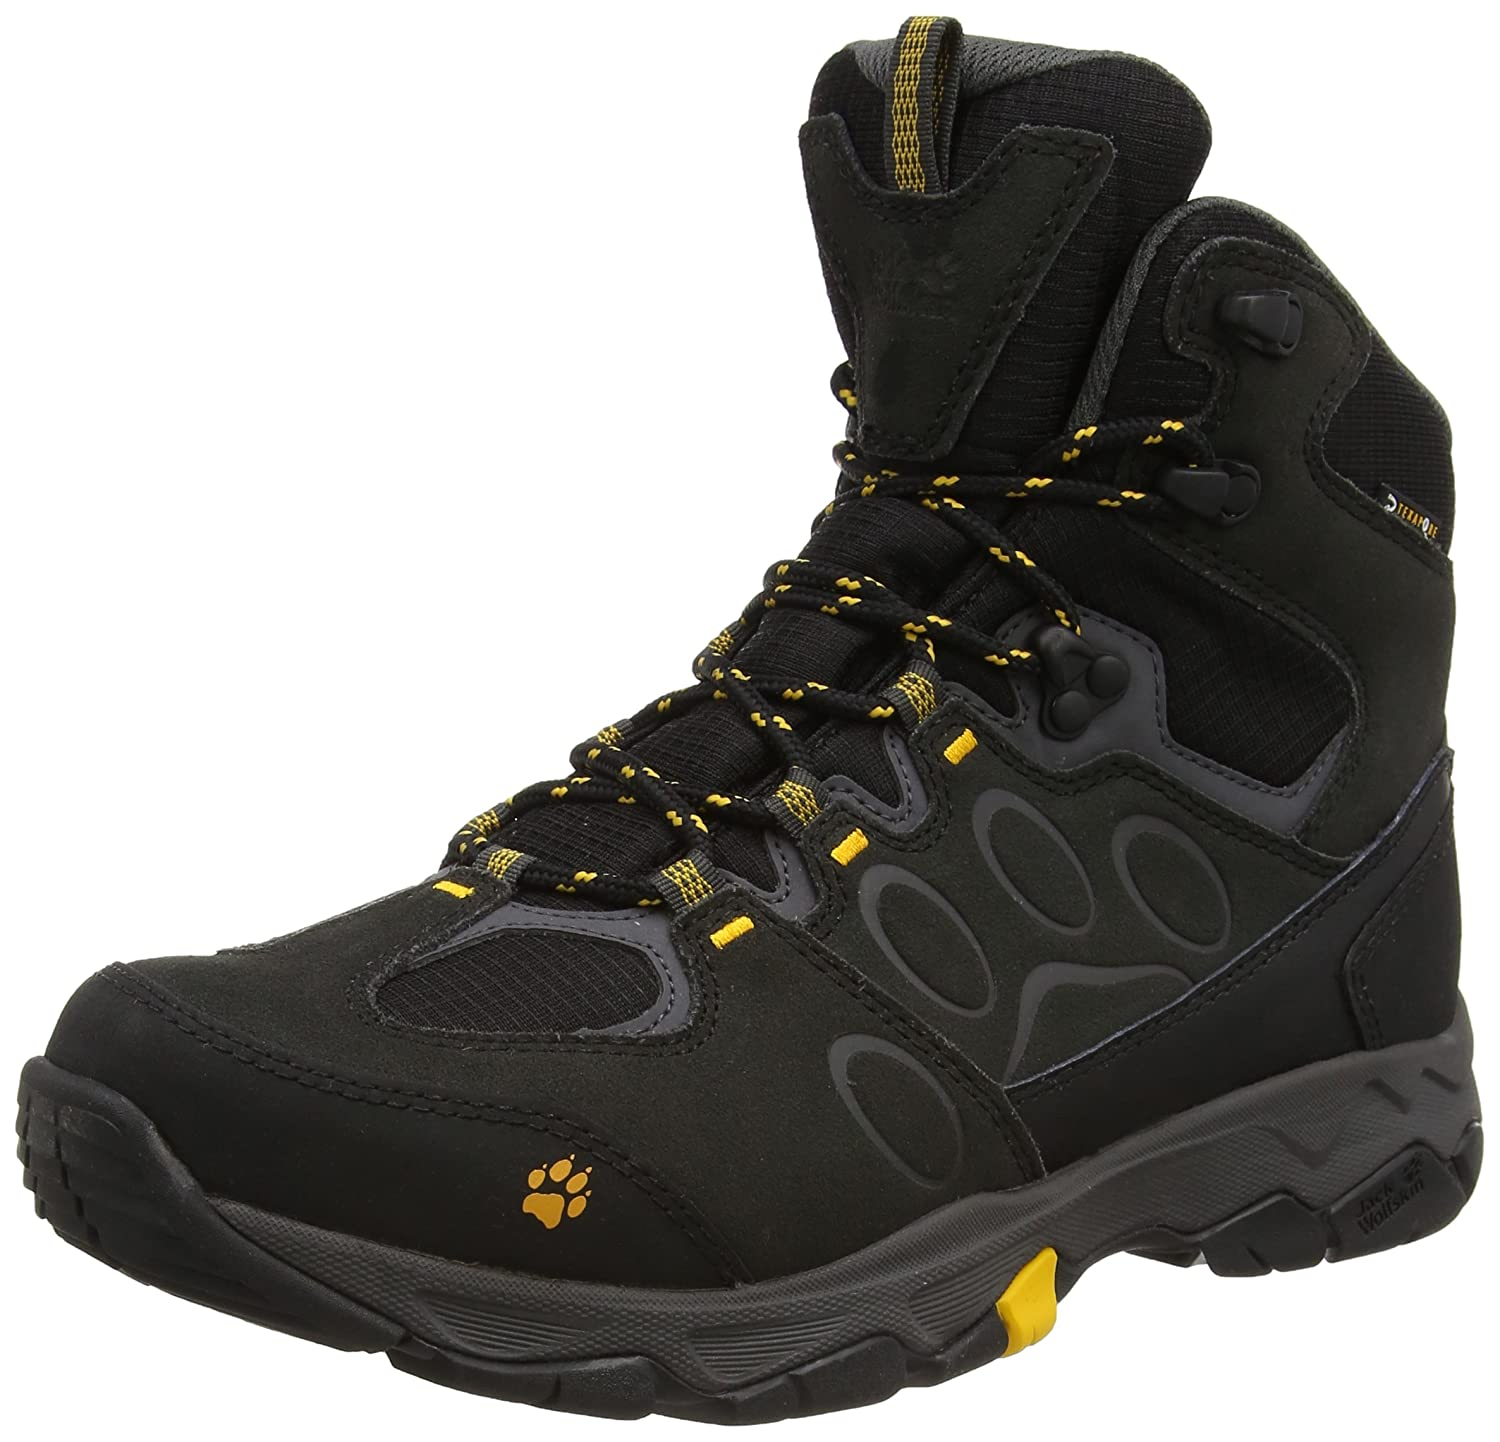 Jack Wolfskin MTN Attack 5 Texapore Mid M, Men's Walking and Hiking Boots